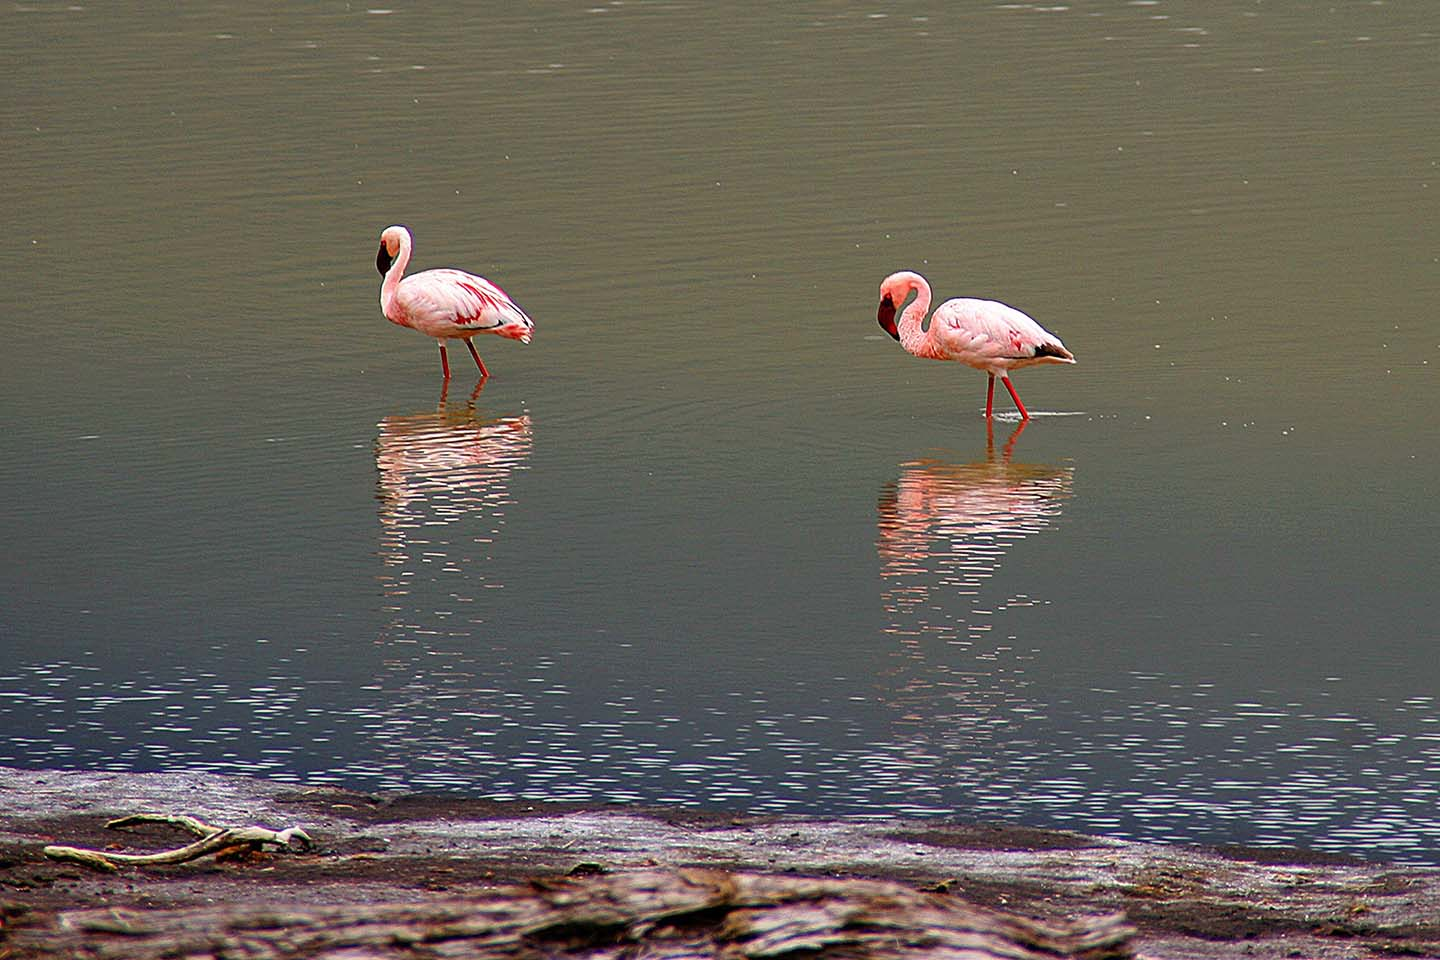 Flamingos, Embakaai See